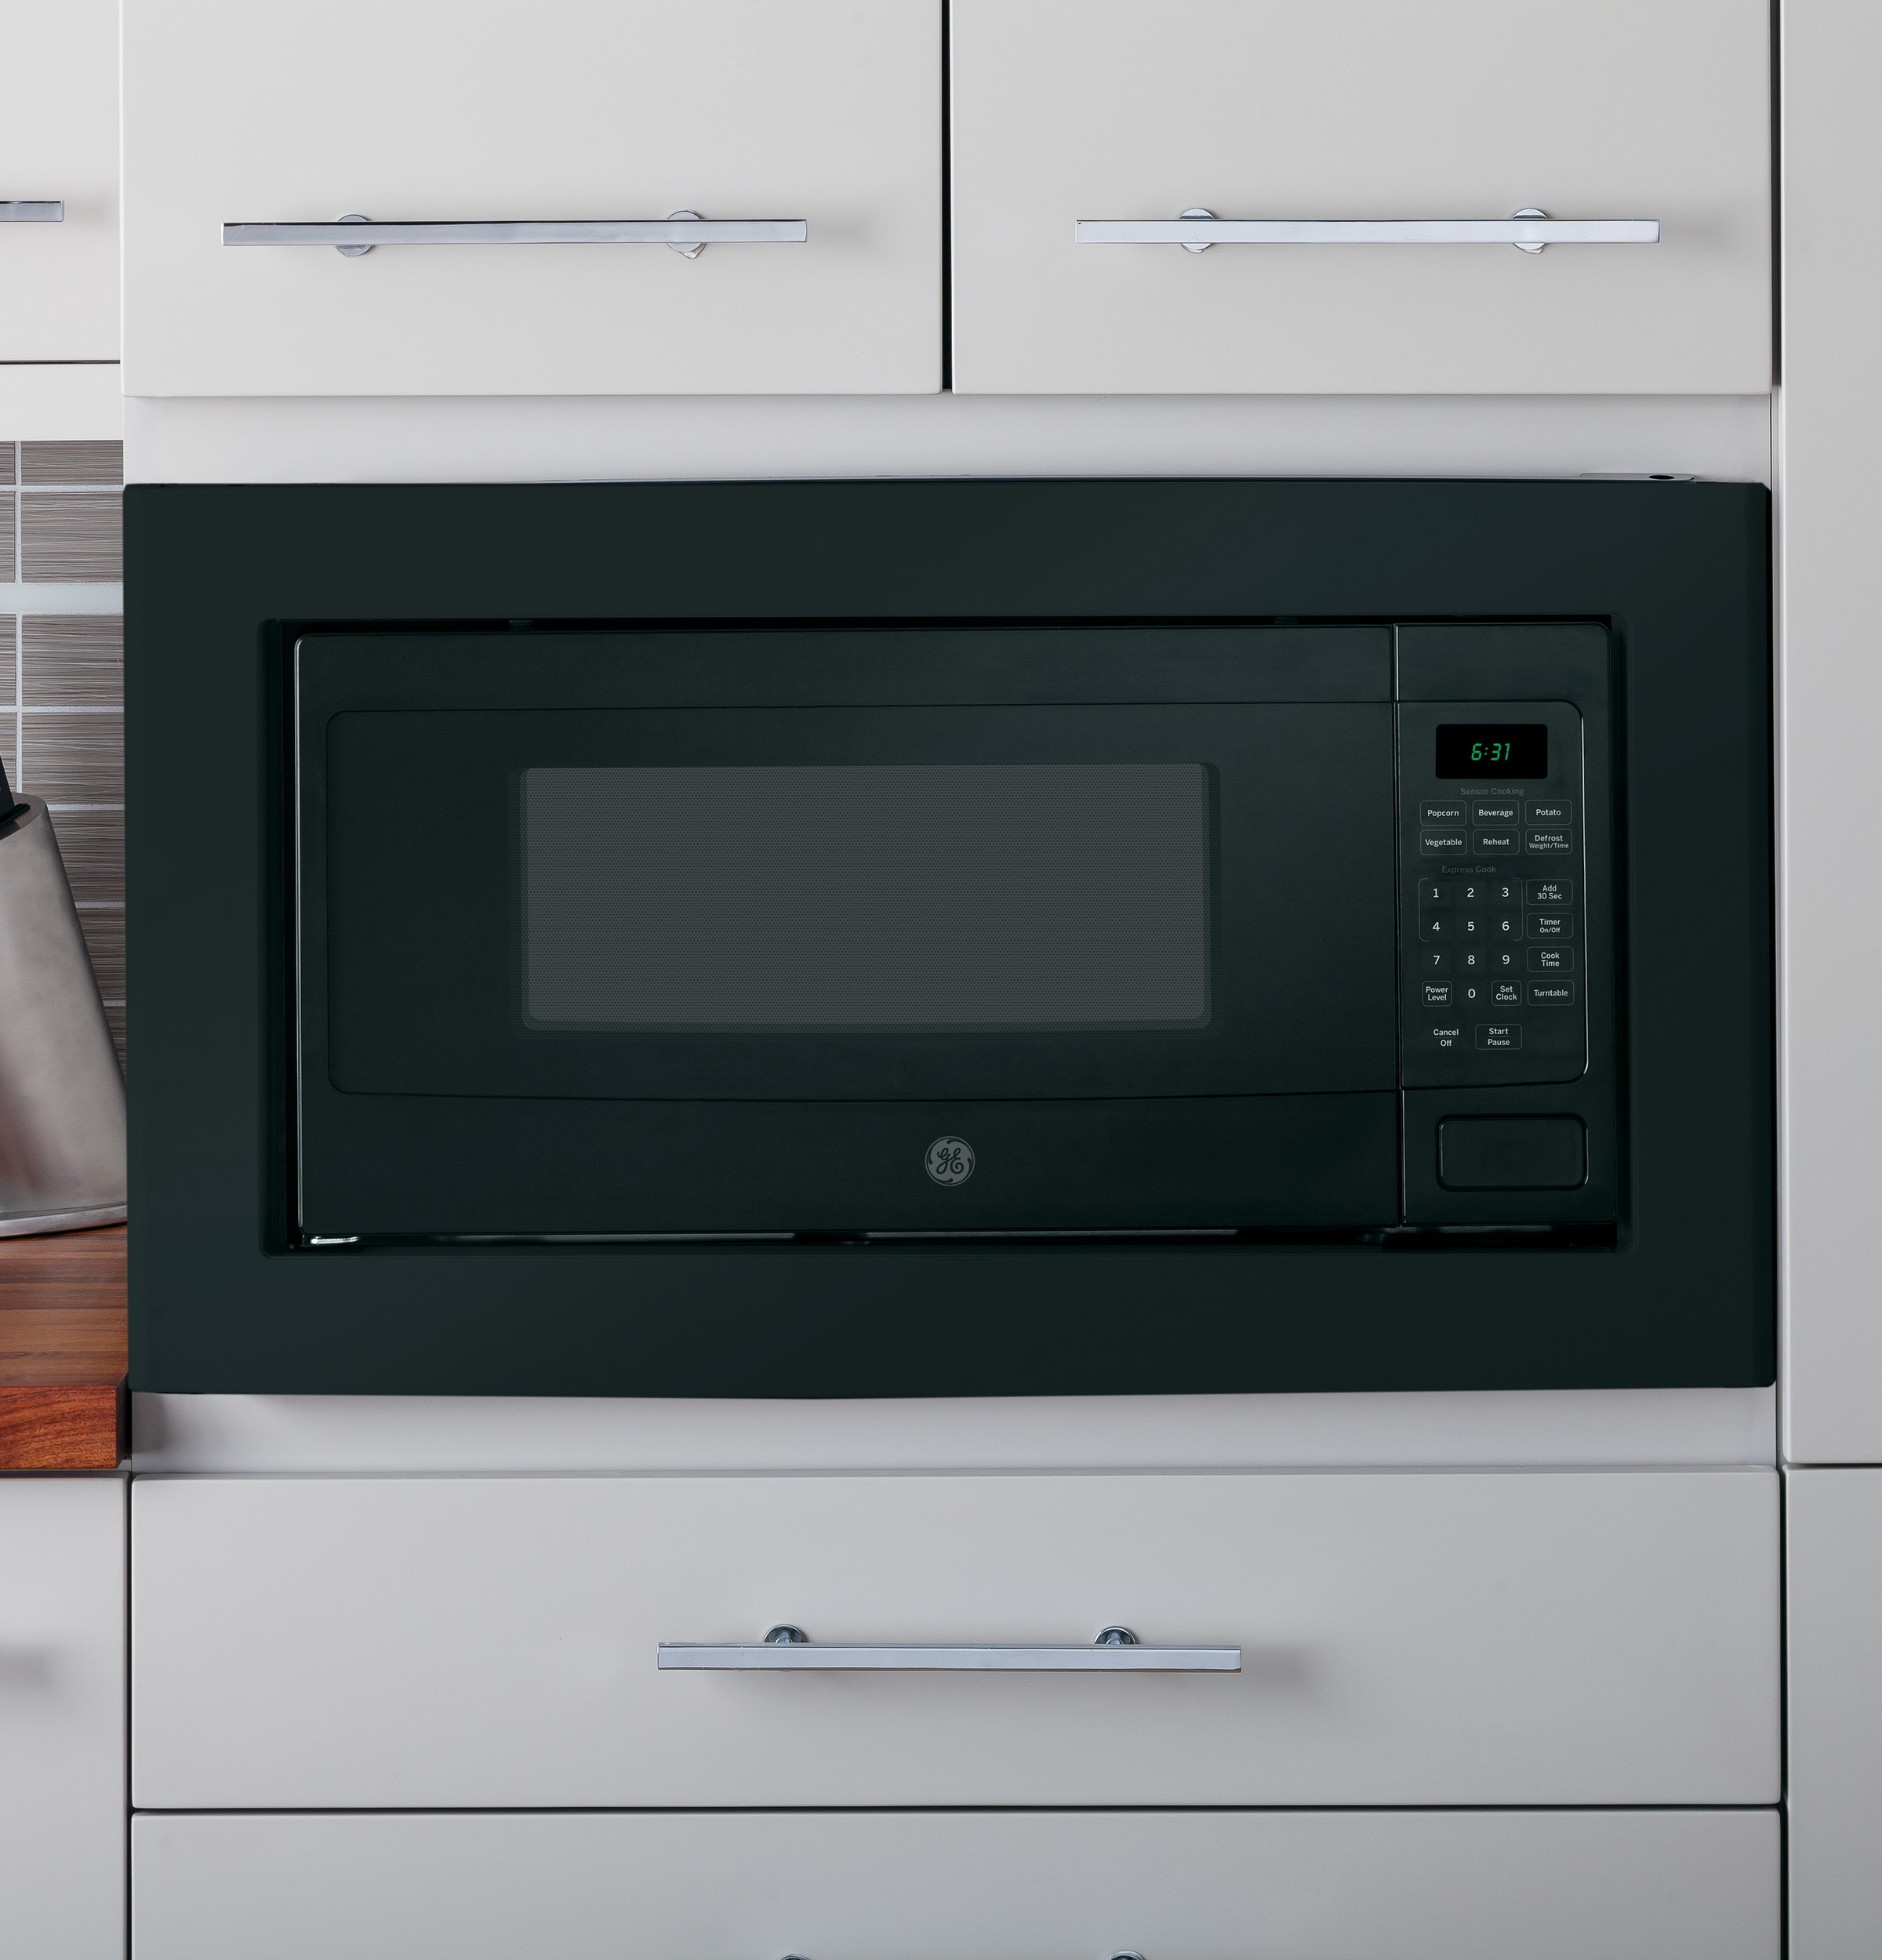 Model: PEM31DFBB | GE Profile GE Profile™ Series 1.1 Cu. Ft. Countertop Microwave Oven